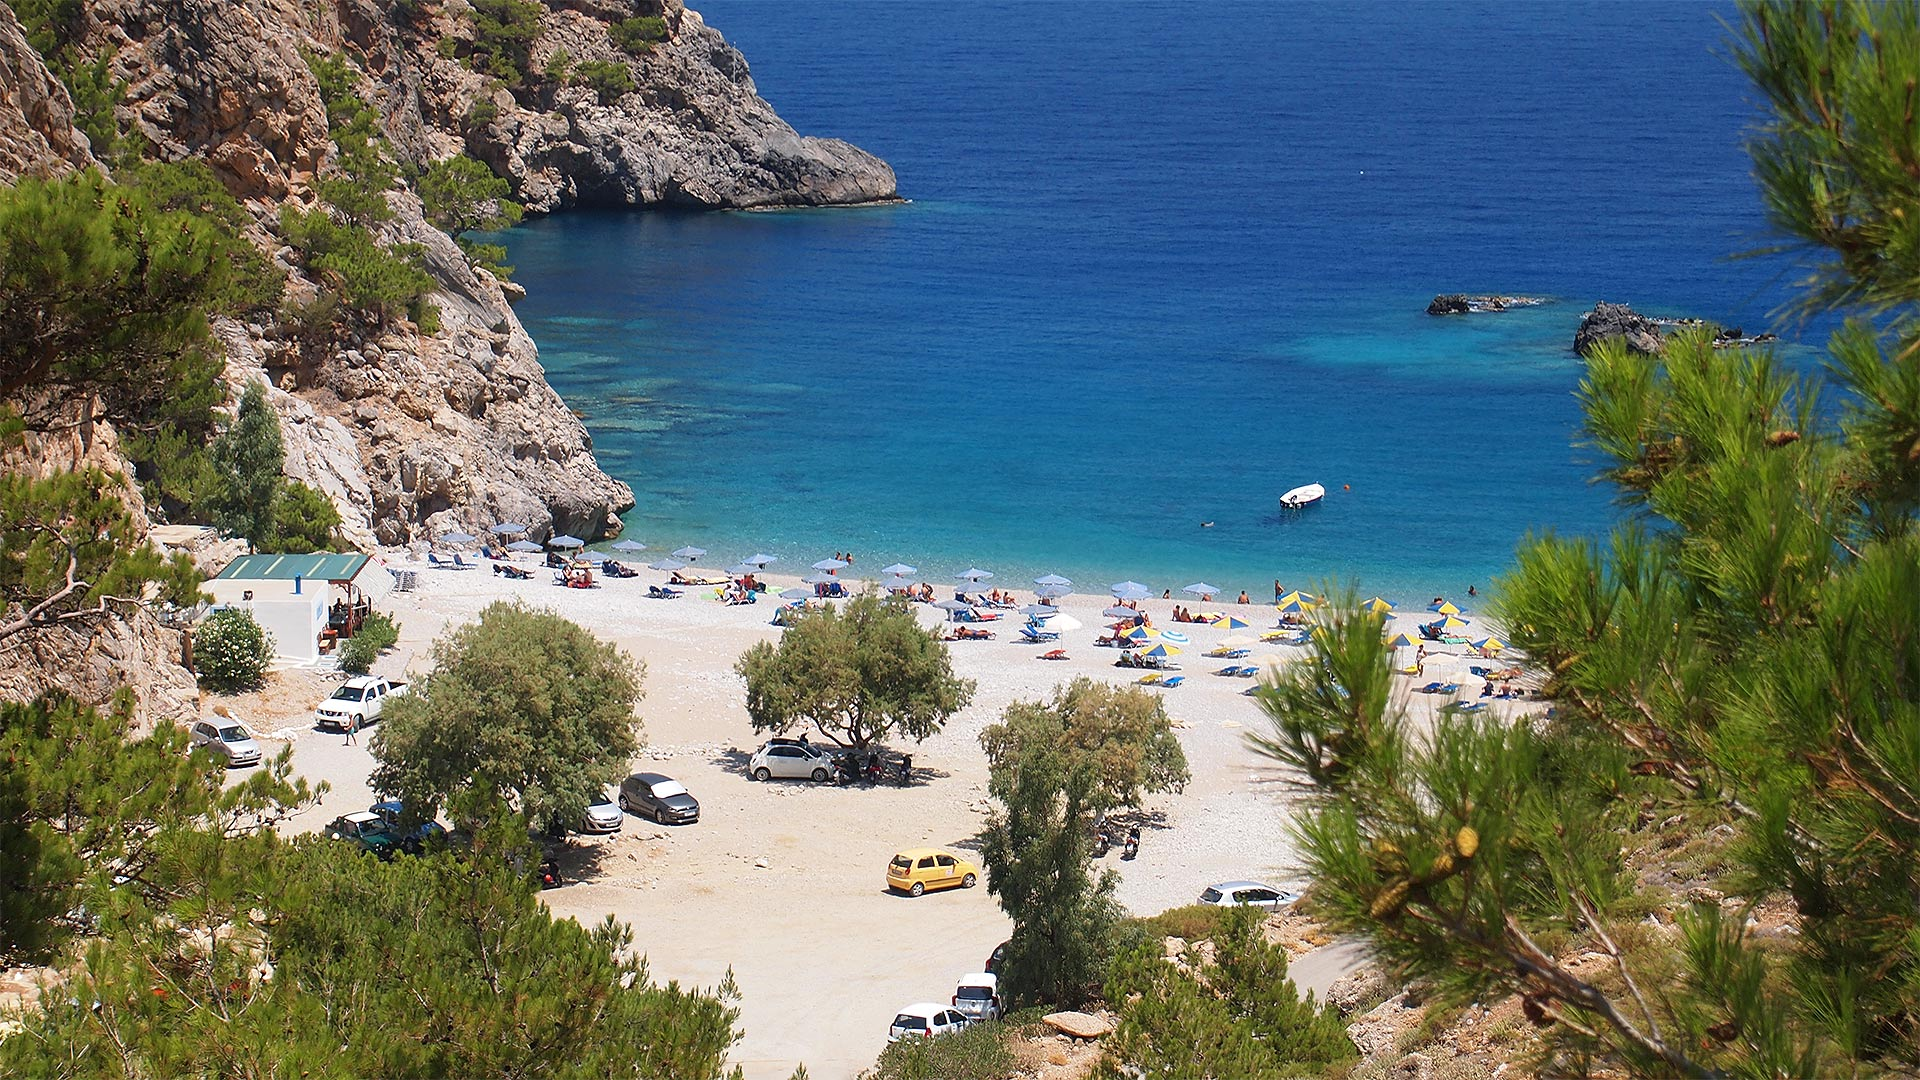 images/slider/achata-beach-karpathos-slider.jpg